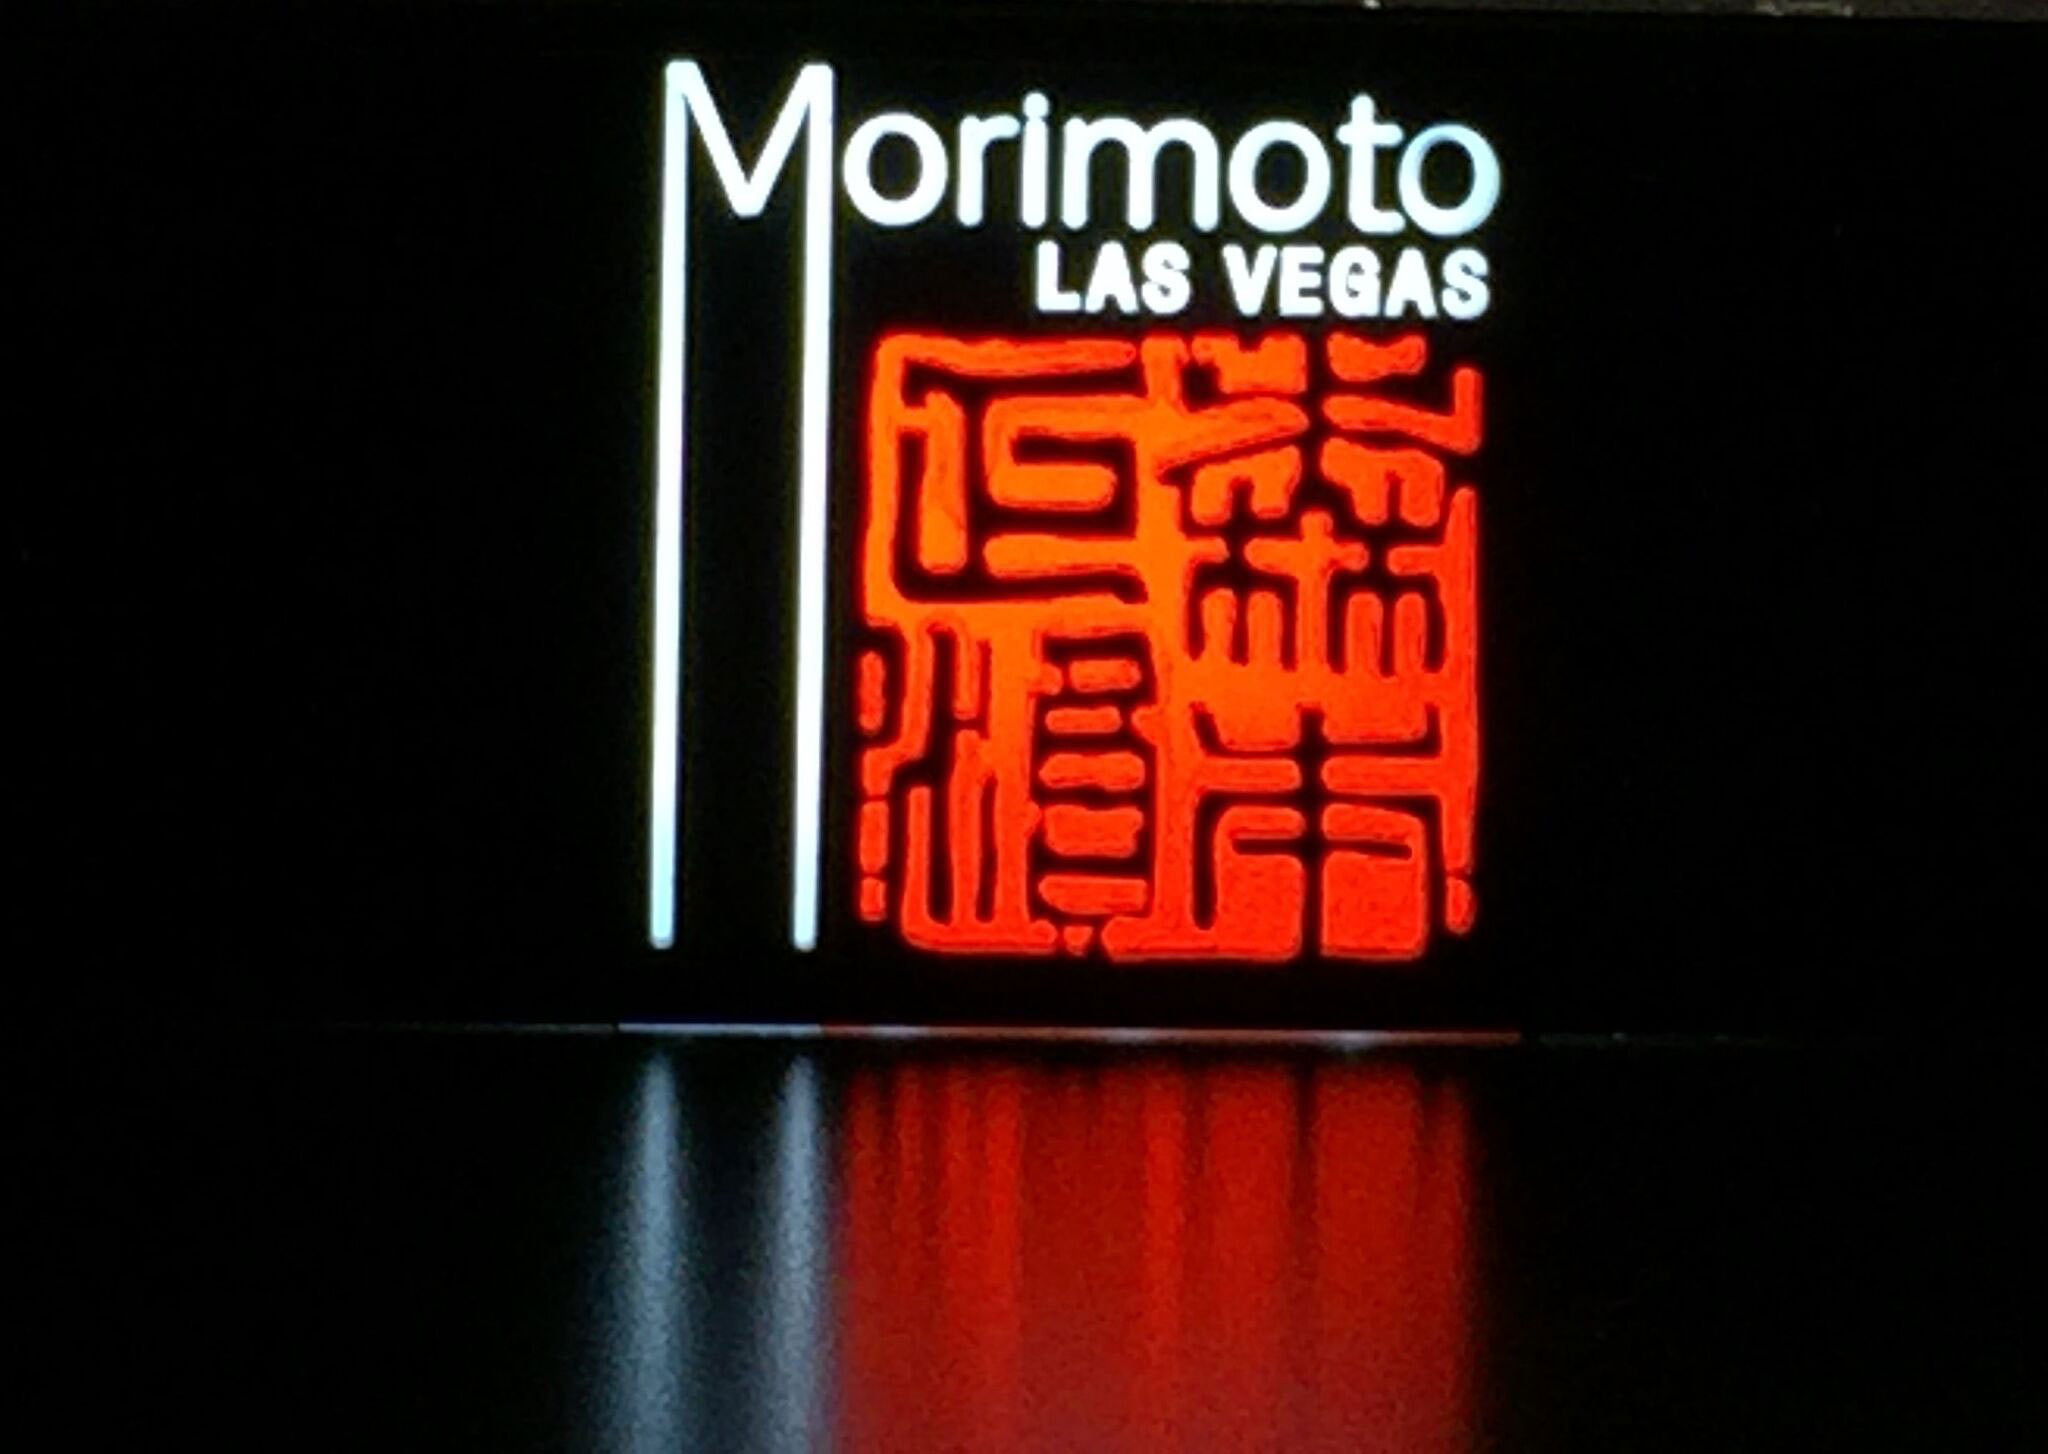 morimoto logo With LED Lights